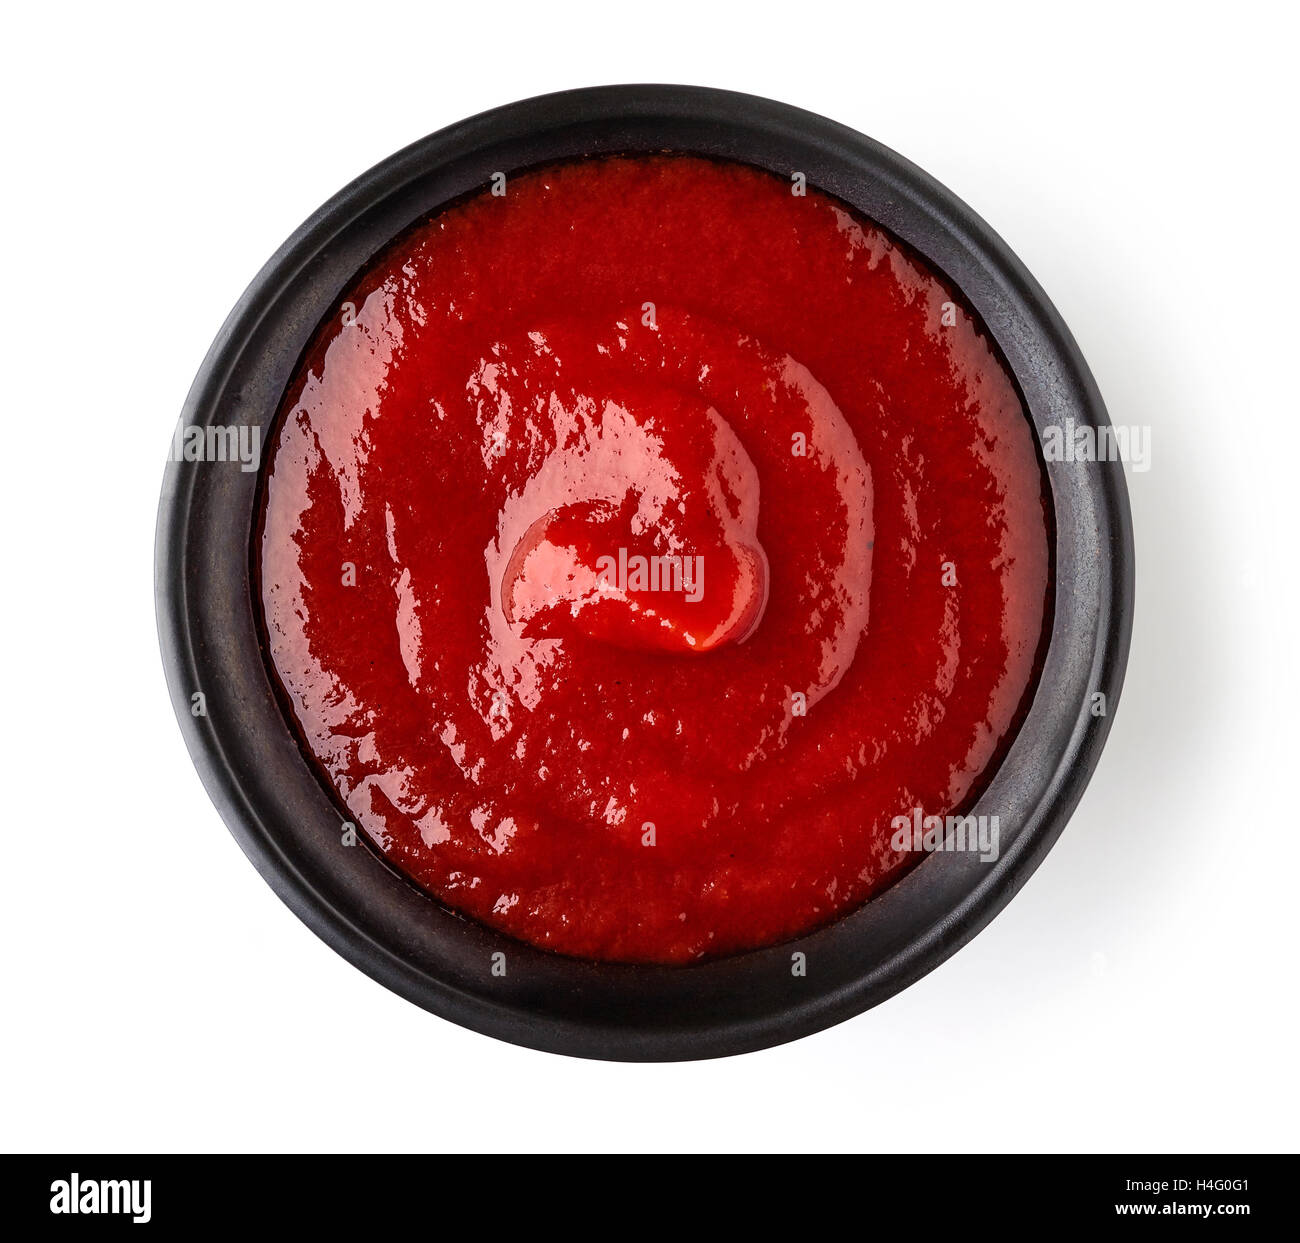 Bowl of ketchup or tomato sauce isolated  on white background, top view - Stock Image